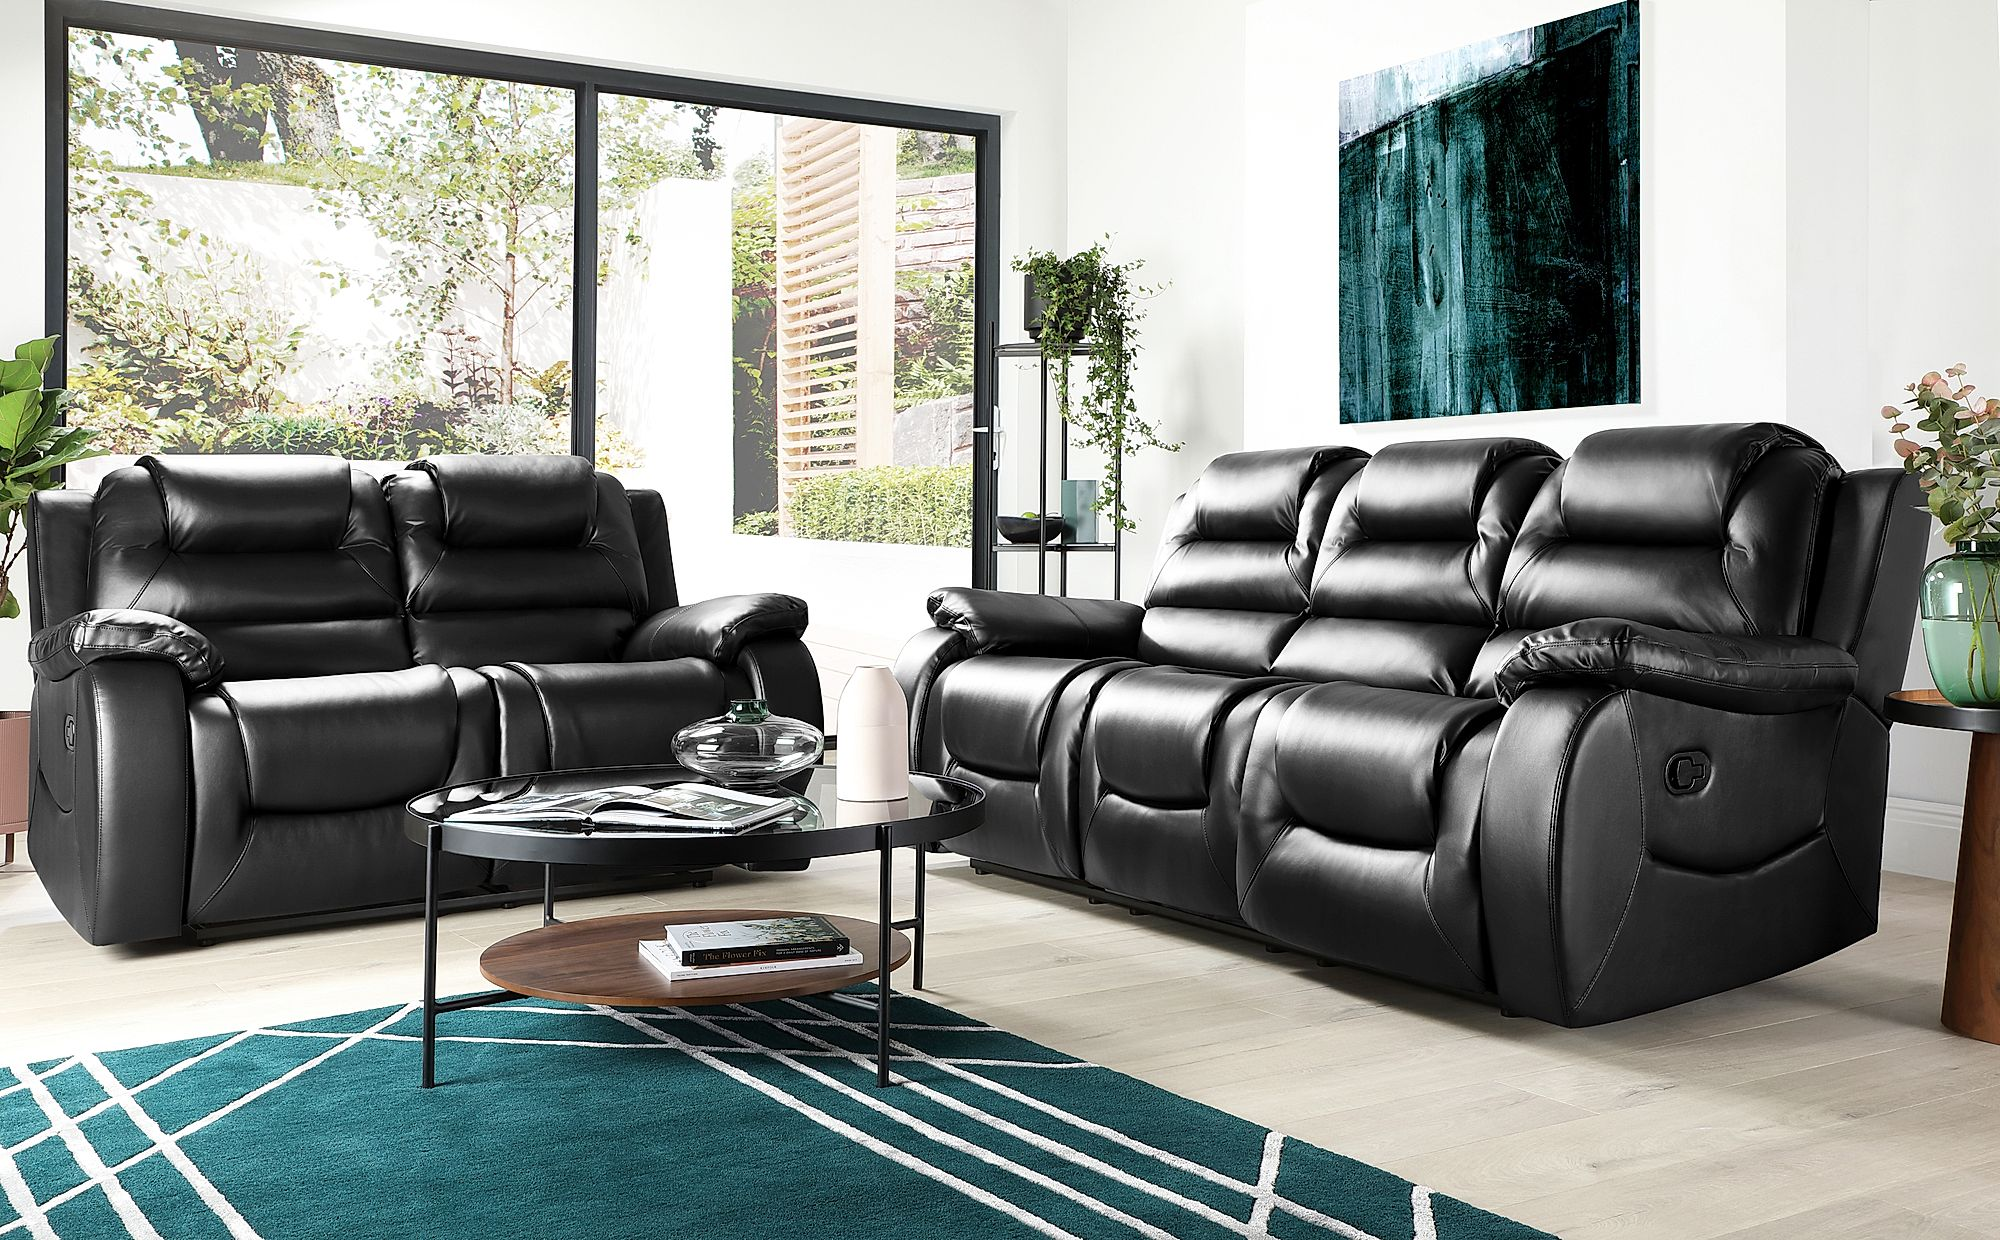 Vancouver Black Leather Recliner 3 2 Seater